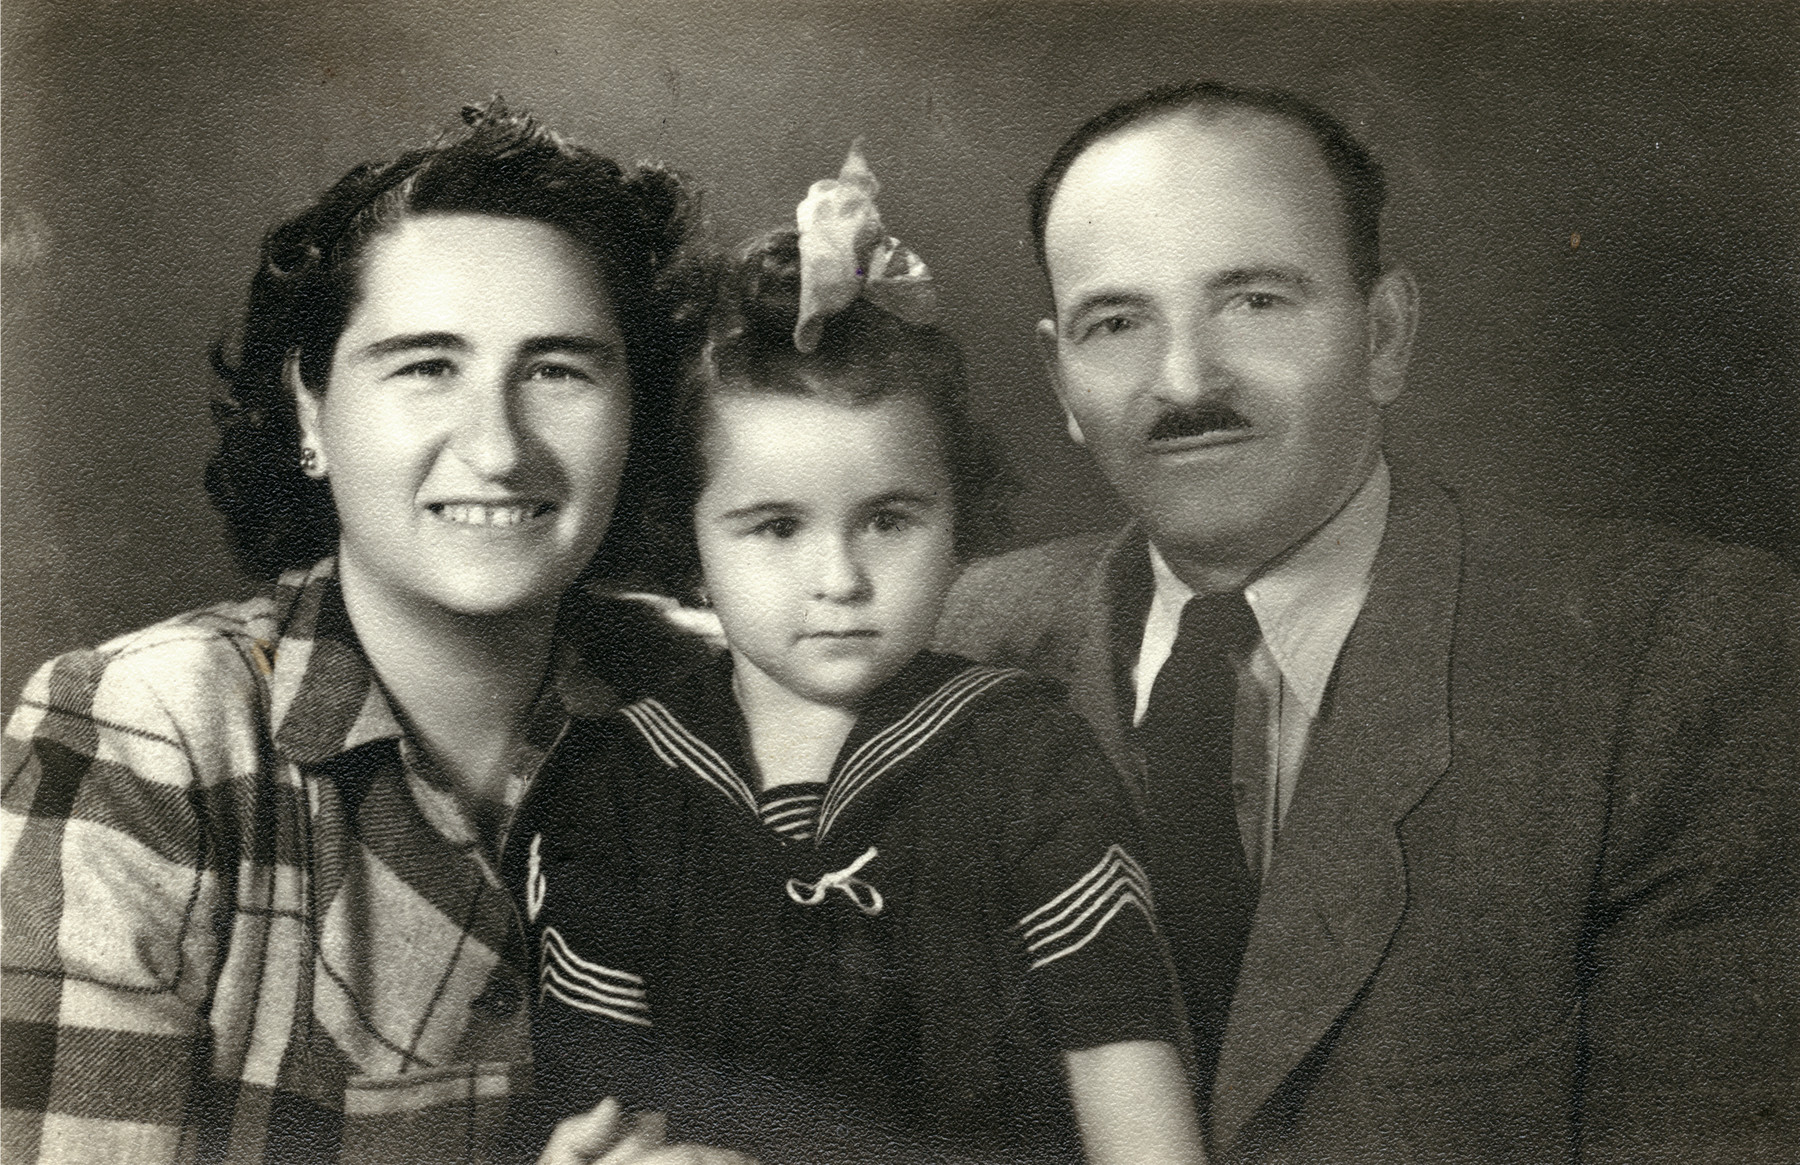 Studio portrait of Eva (Hava), Sara and Avraham Bernat Koviliak  in Israel, ca. 1950